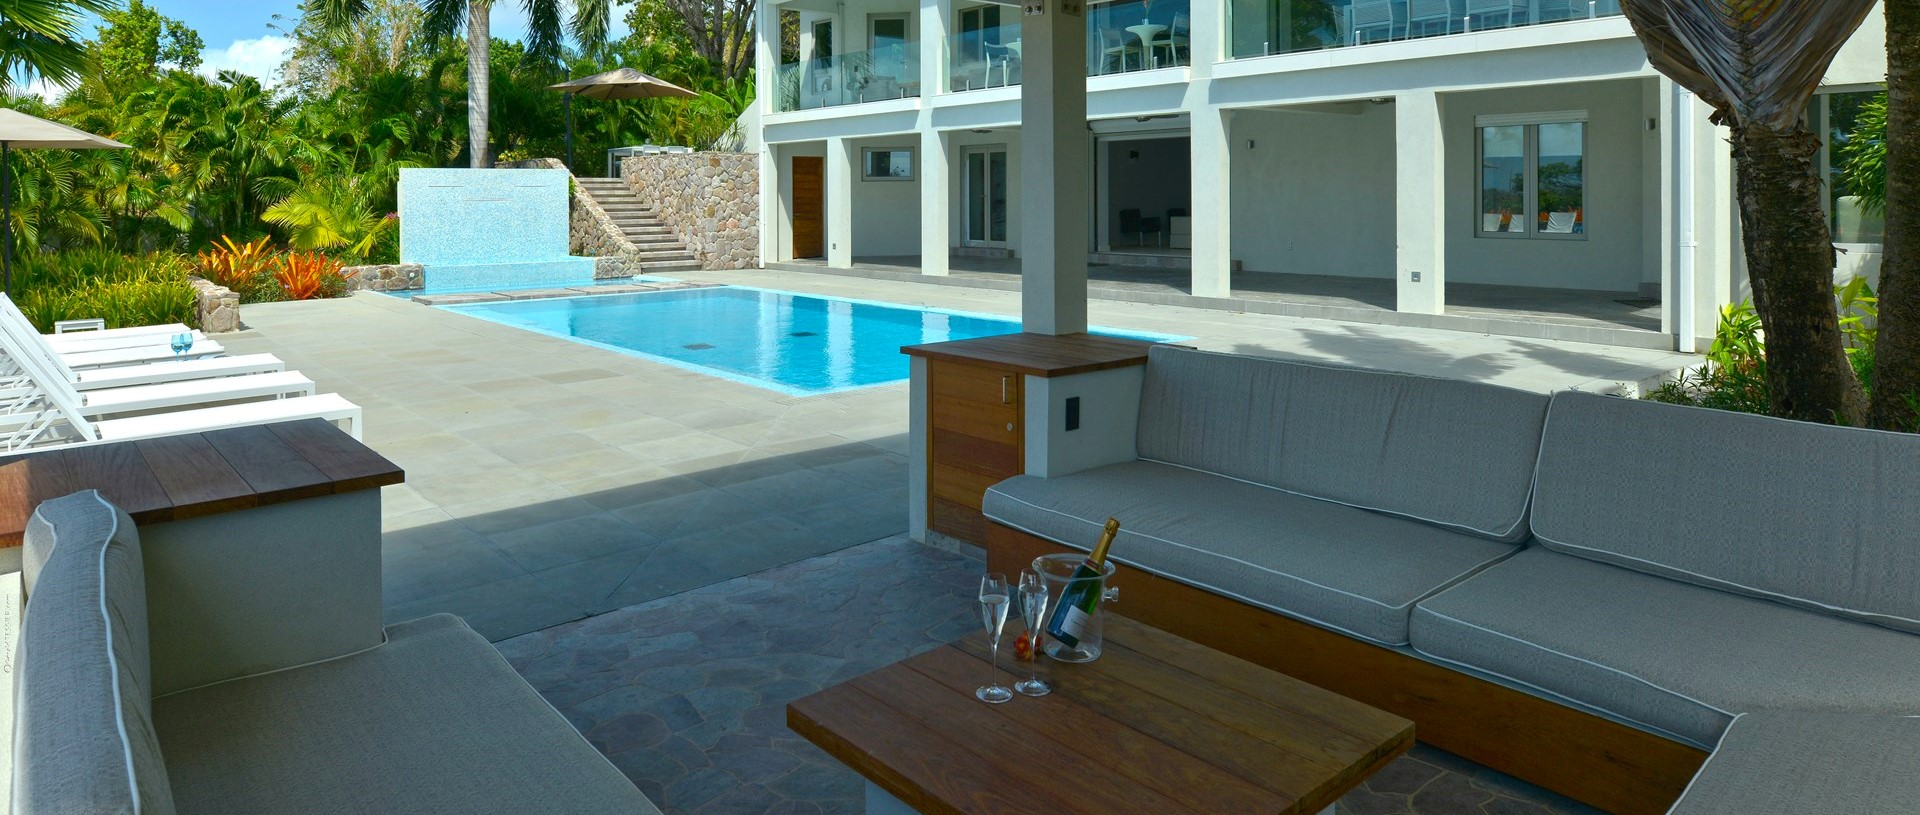 retreat-villa-nevis-poolside-cabana